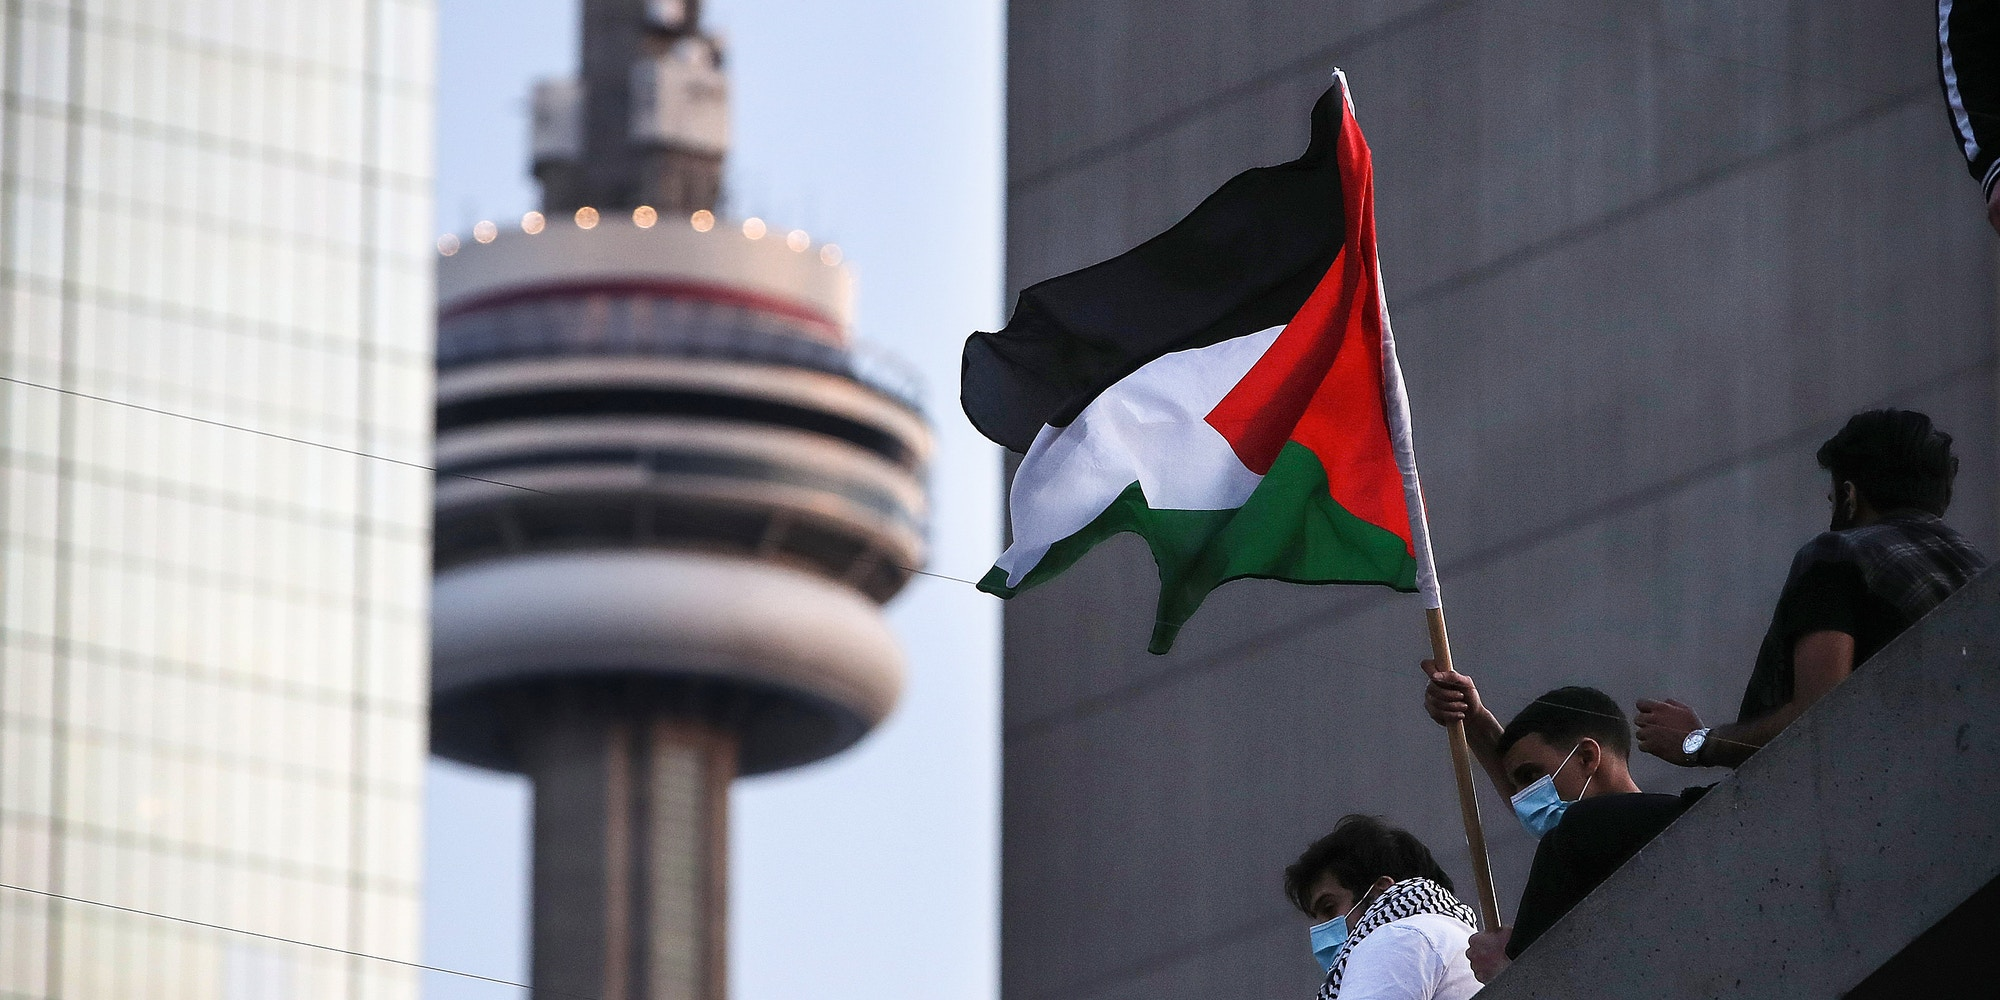 Toronto, ON- May 15  -  Thousands fill Nathan Phillips Squareas  the Palestinian Youth Movement (PYM) hold a demonstration against the Israel/Gaza Strip clashes.  Ontario tightens restrictions to slow the spread of the COVID-19 pandemic in Toronto. May 15, 2021.        (Steve Russell/Toronto Star via Getty Images)